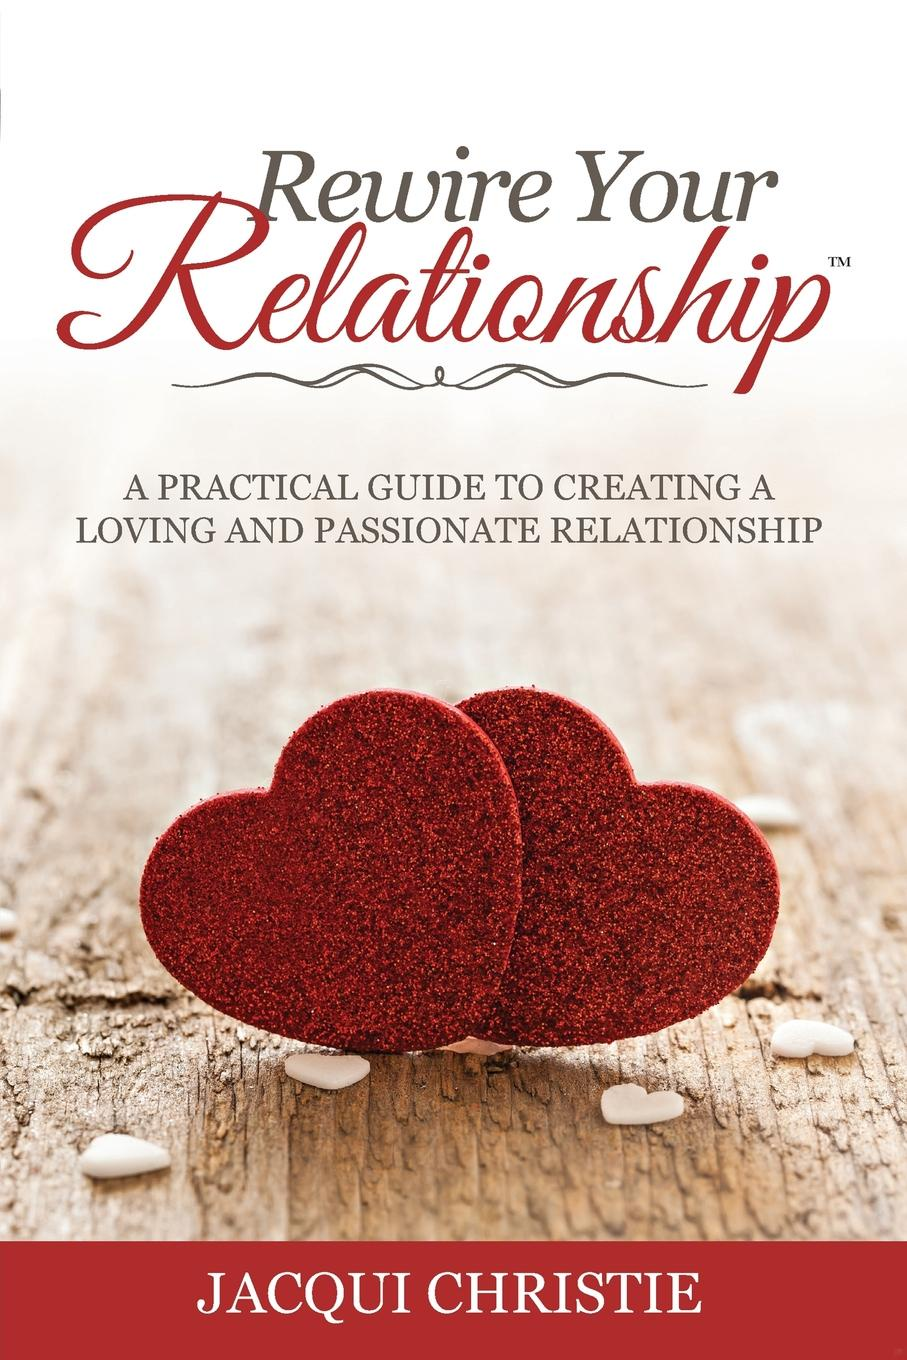 Jacqui Christie Rewire Your Relationship. A Practical Guide to Creating a Loving and Passionate Relationship matt tenney the mindfulness edge how to rewire your brain for leadership and personal excellence without adding to your schedule